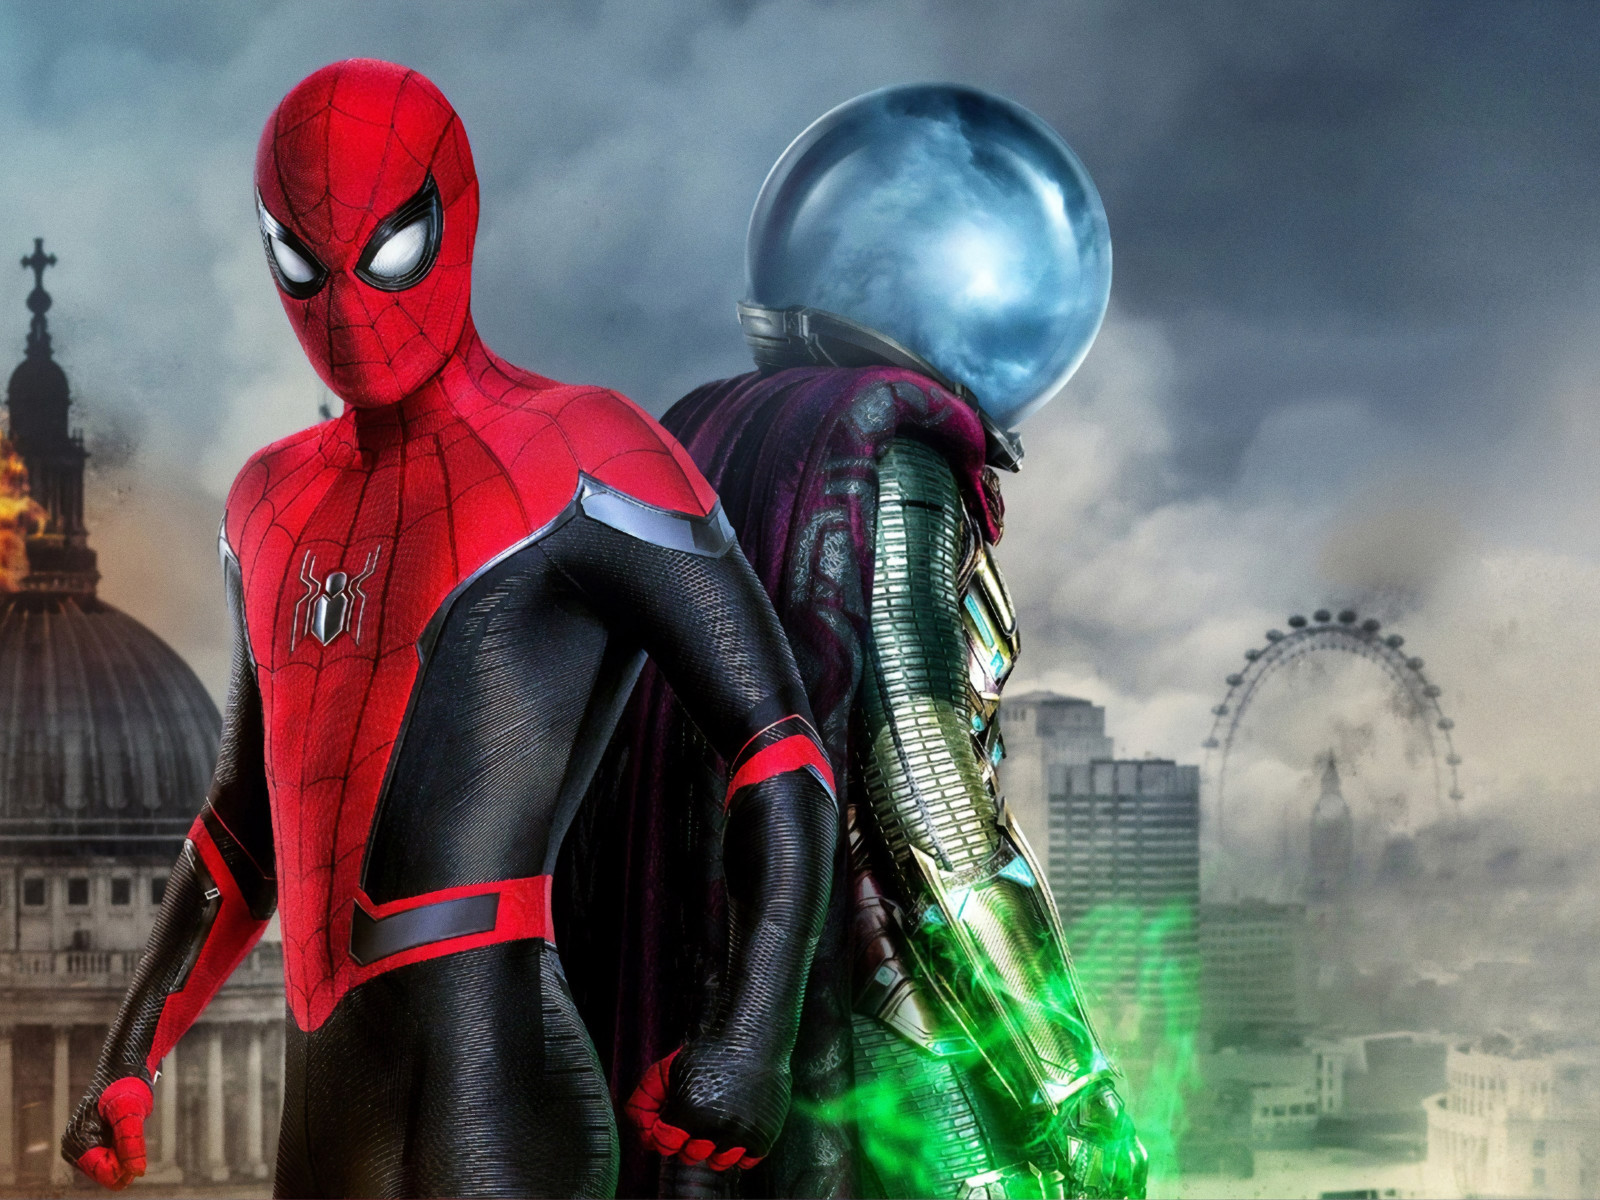 Spider Man and Mysterio | 1600x1200 wallpaper